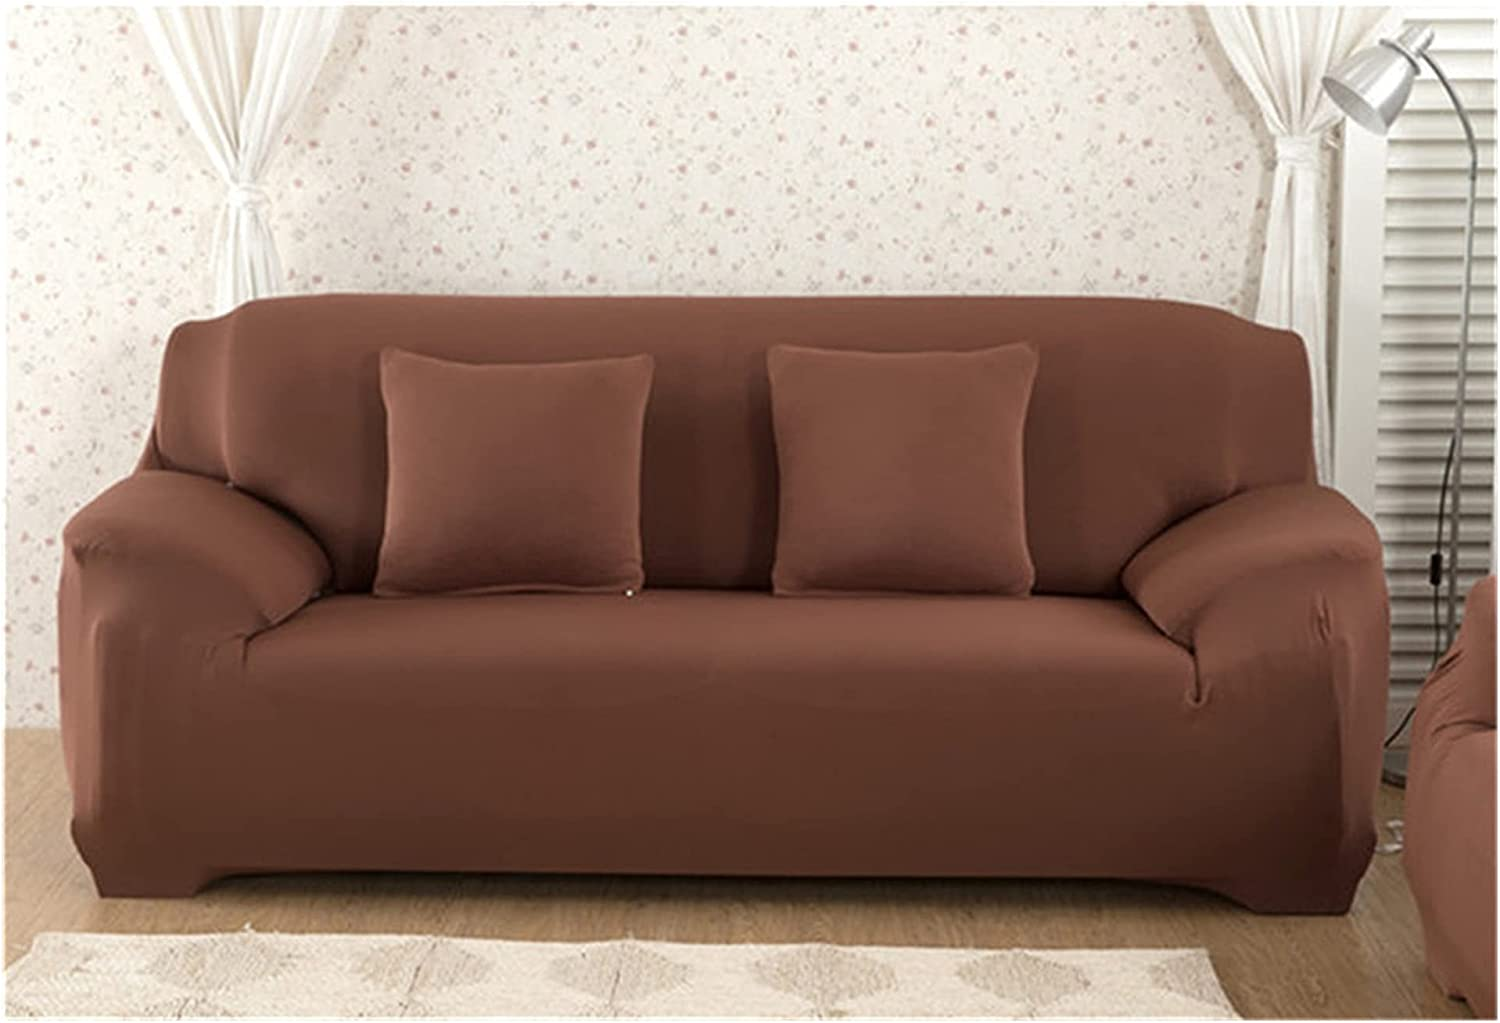 XUELINGTANG Elastic Sofa Cover All-Inclusive Wrap Bombing free shipping Stretch It is very popular Tight